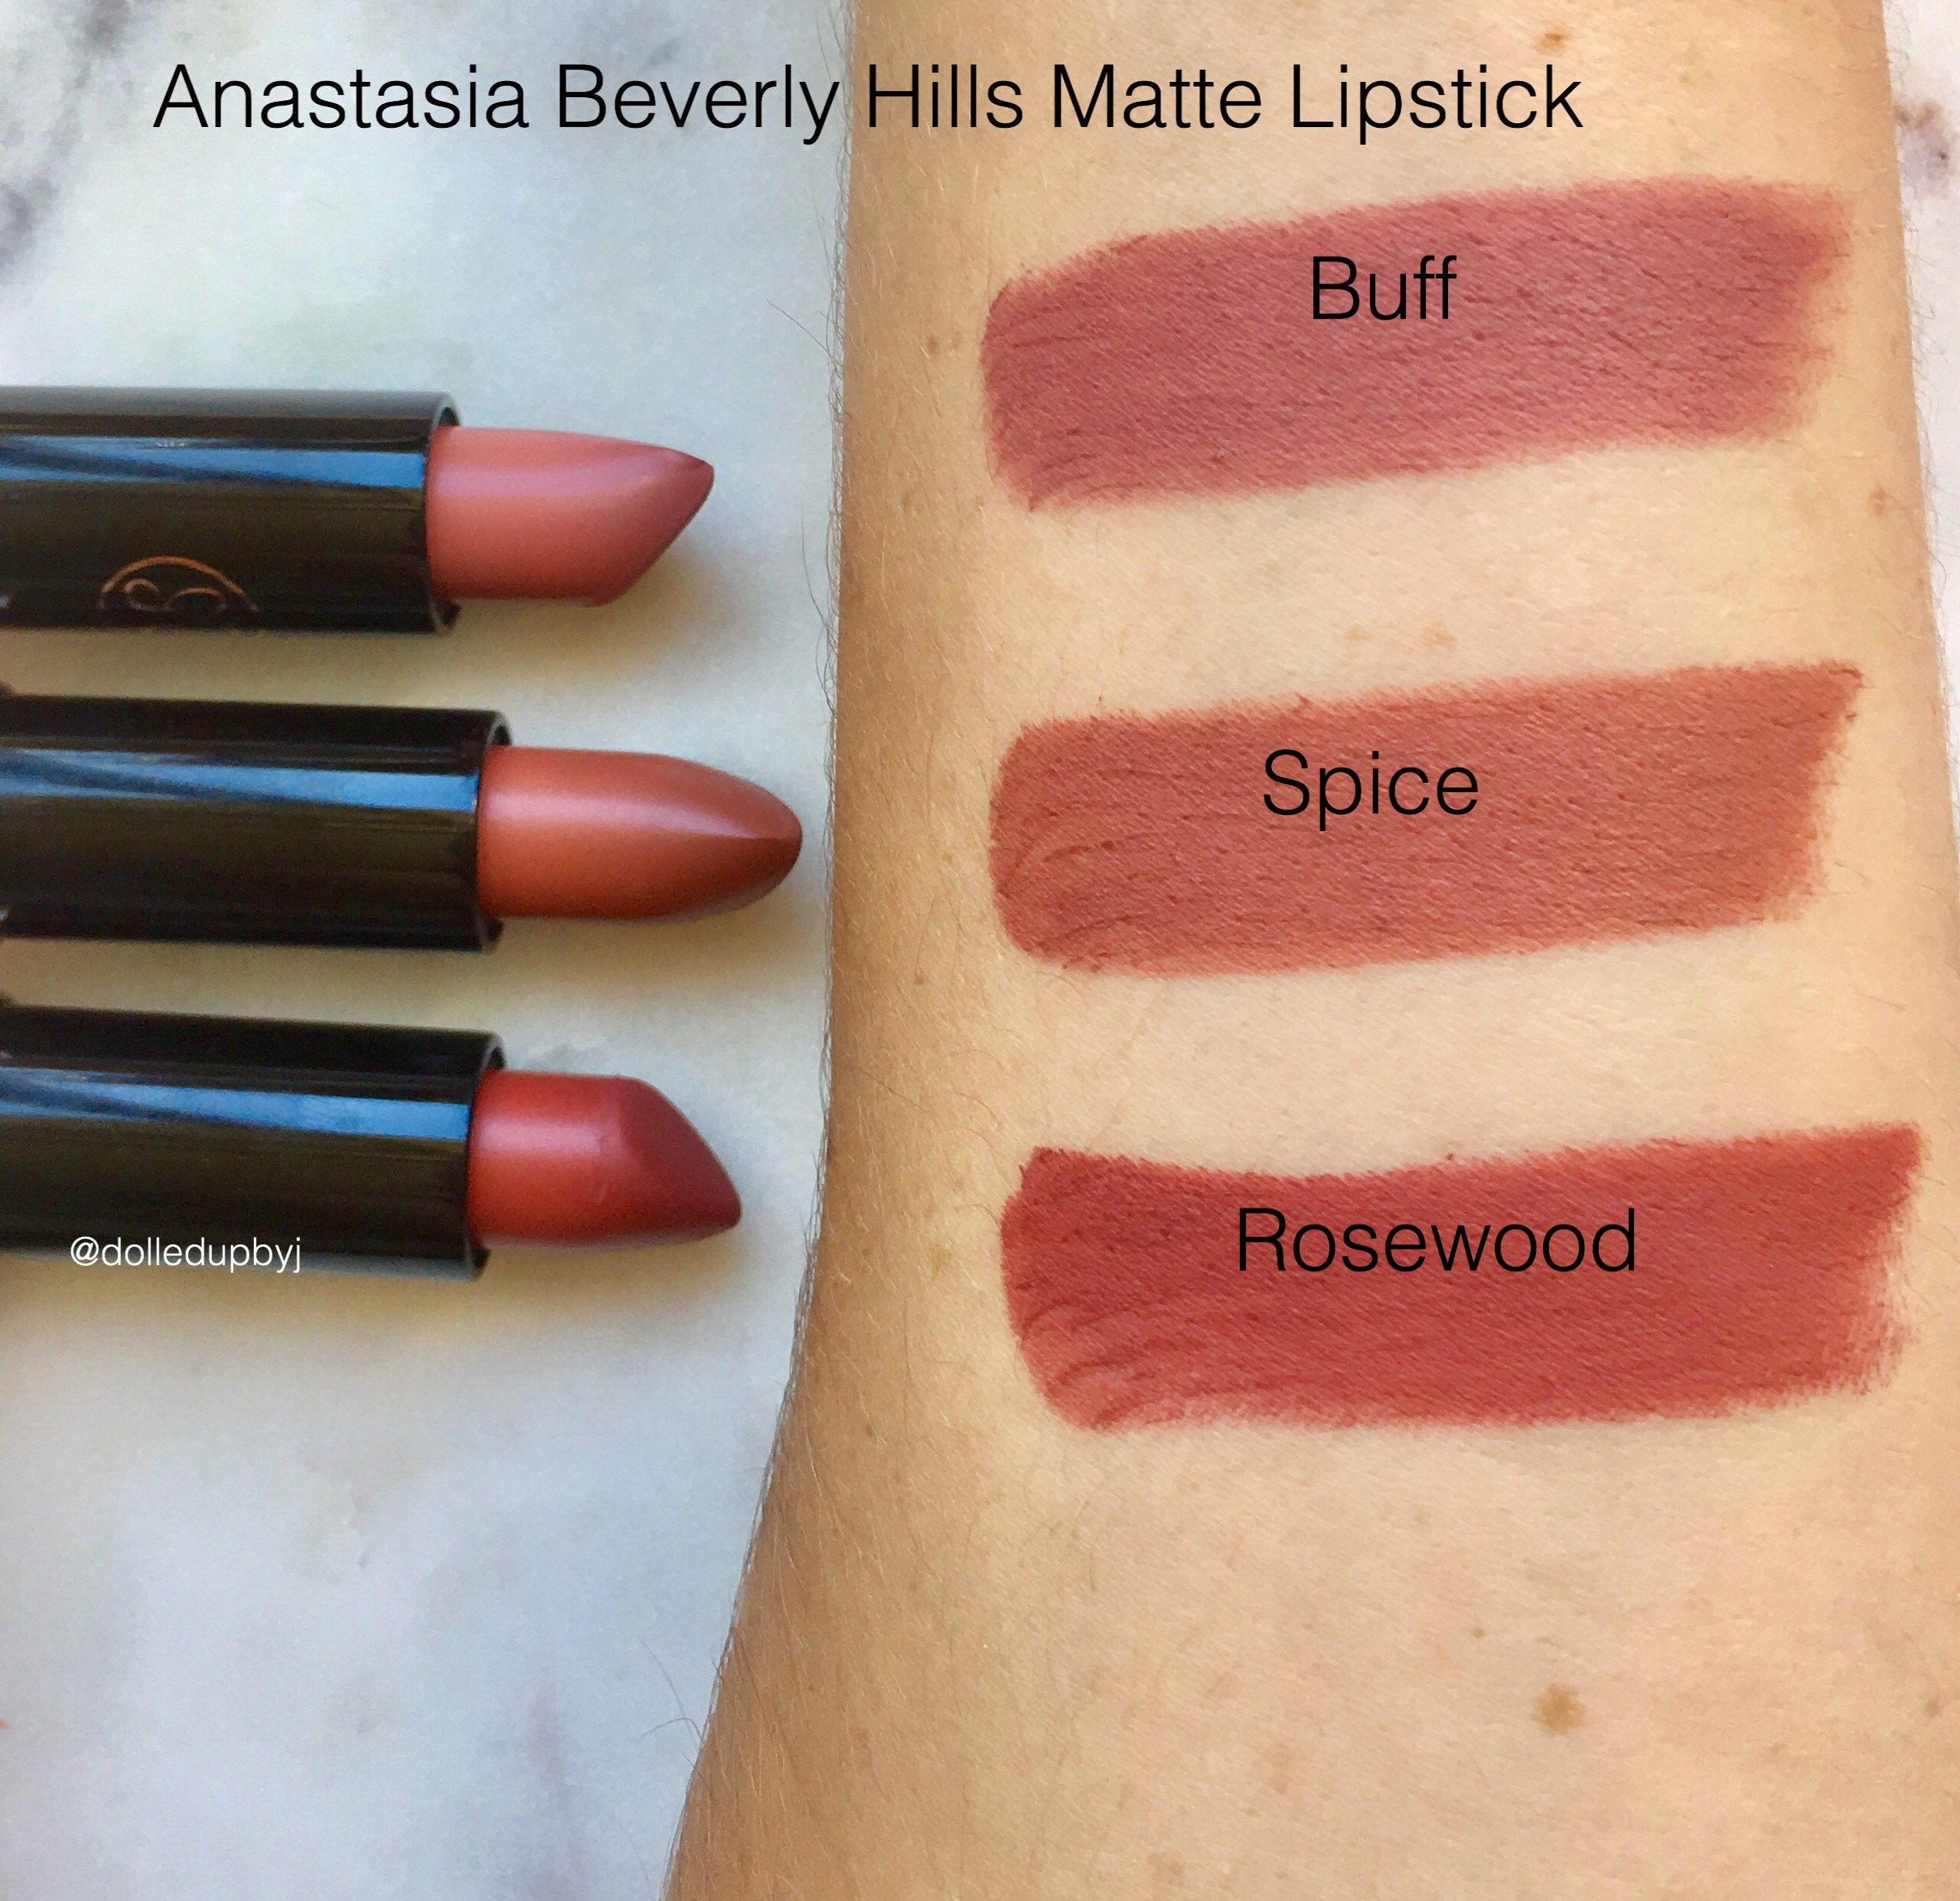 Anastasia Beverly Hills Matte Lipstick Review Swatches Dolled Up By J Lipstick Matte Lipstick Colors Anastasia Beverly Hills Lipstick